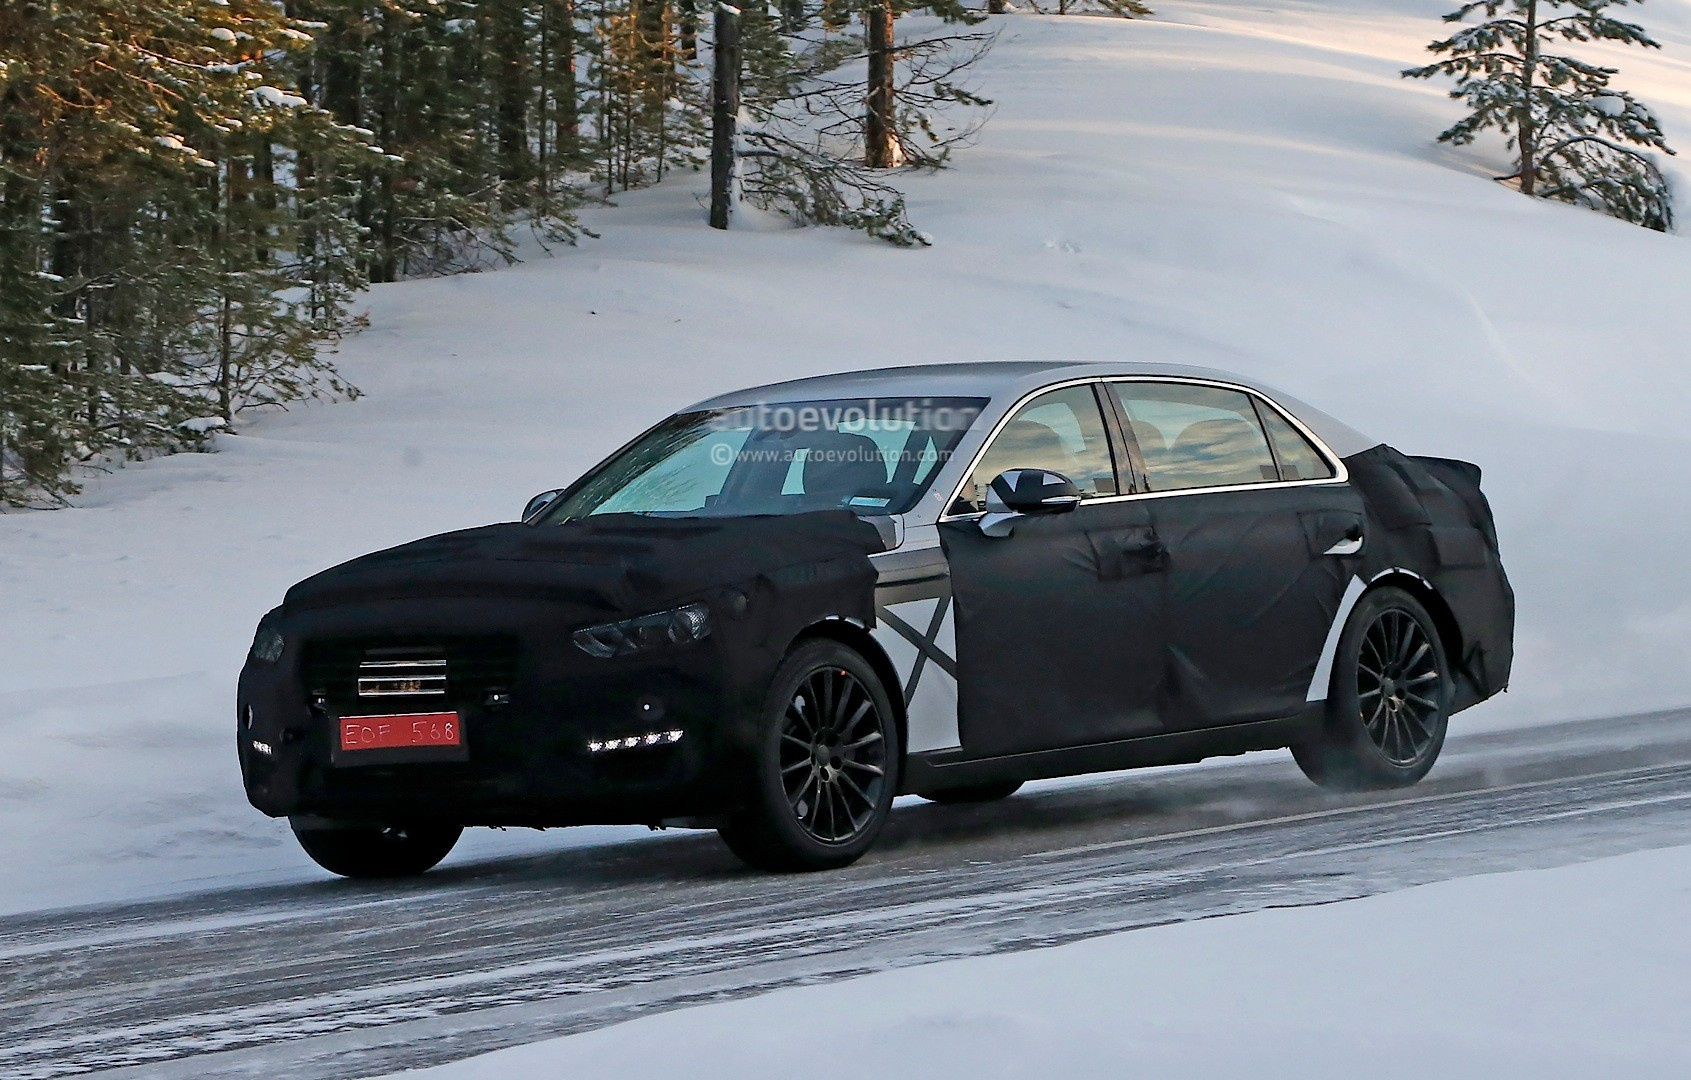 Spyshots 2016 Hyundai Equus Spied With S Class Inspired